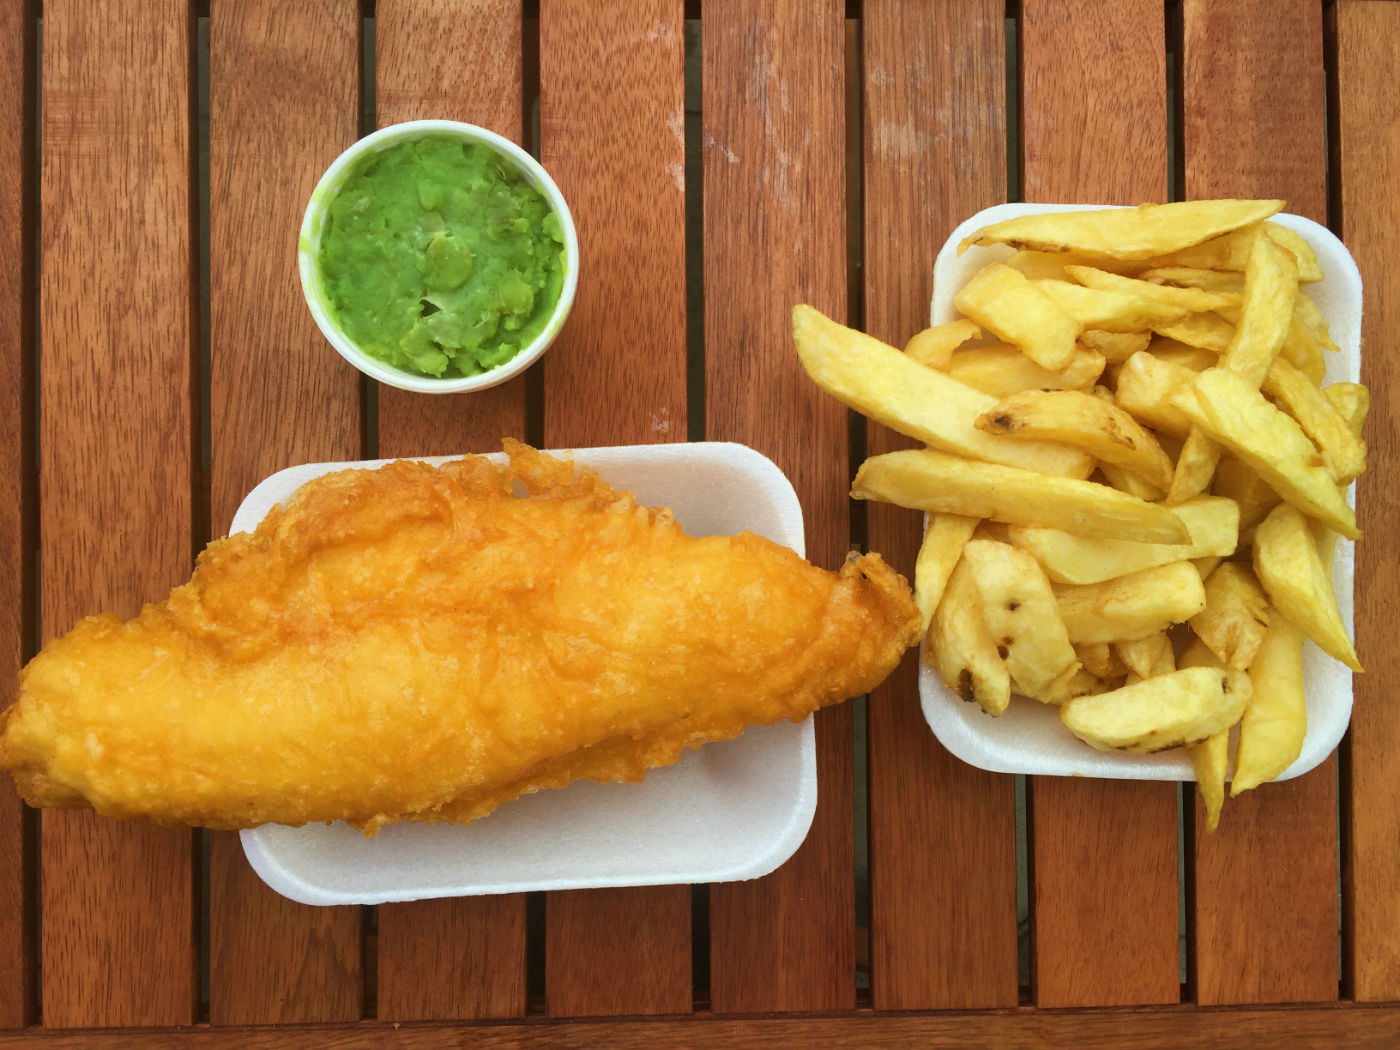 Cod and chips with mushy peas. Photo: SE